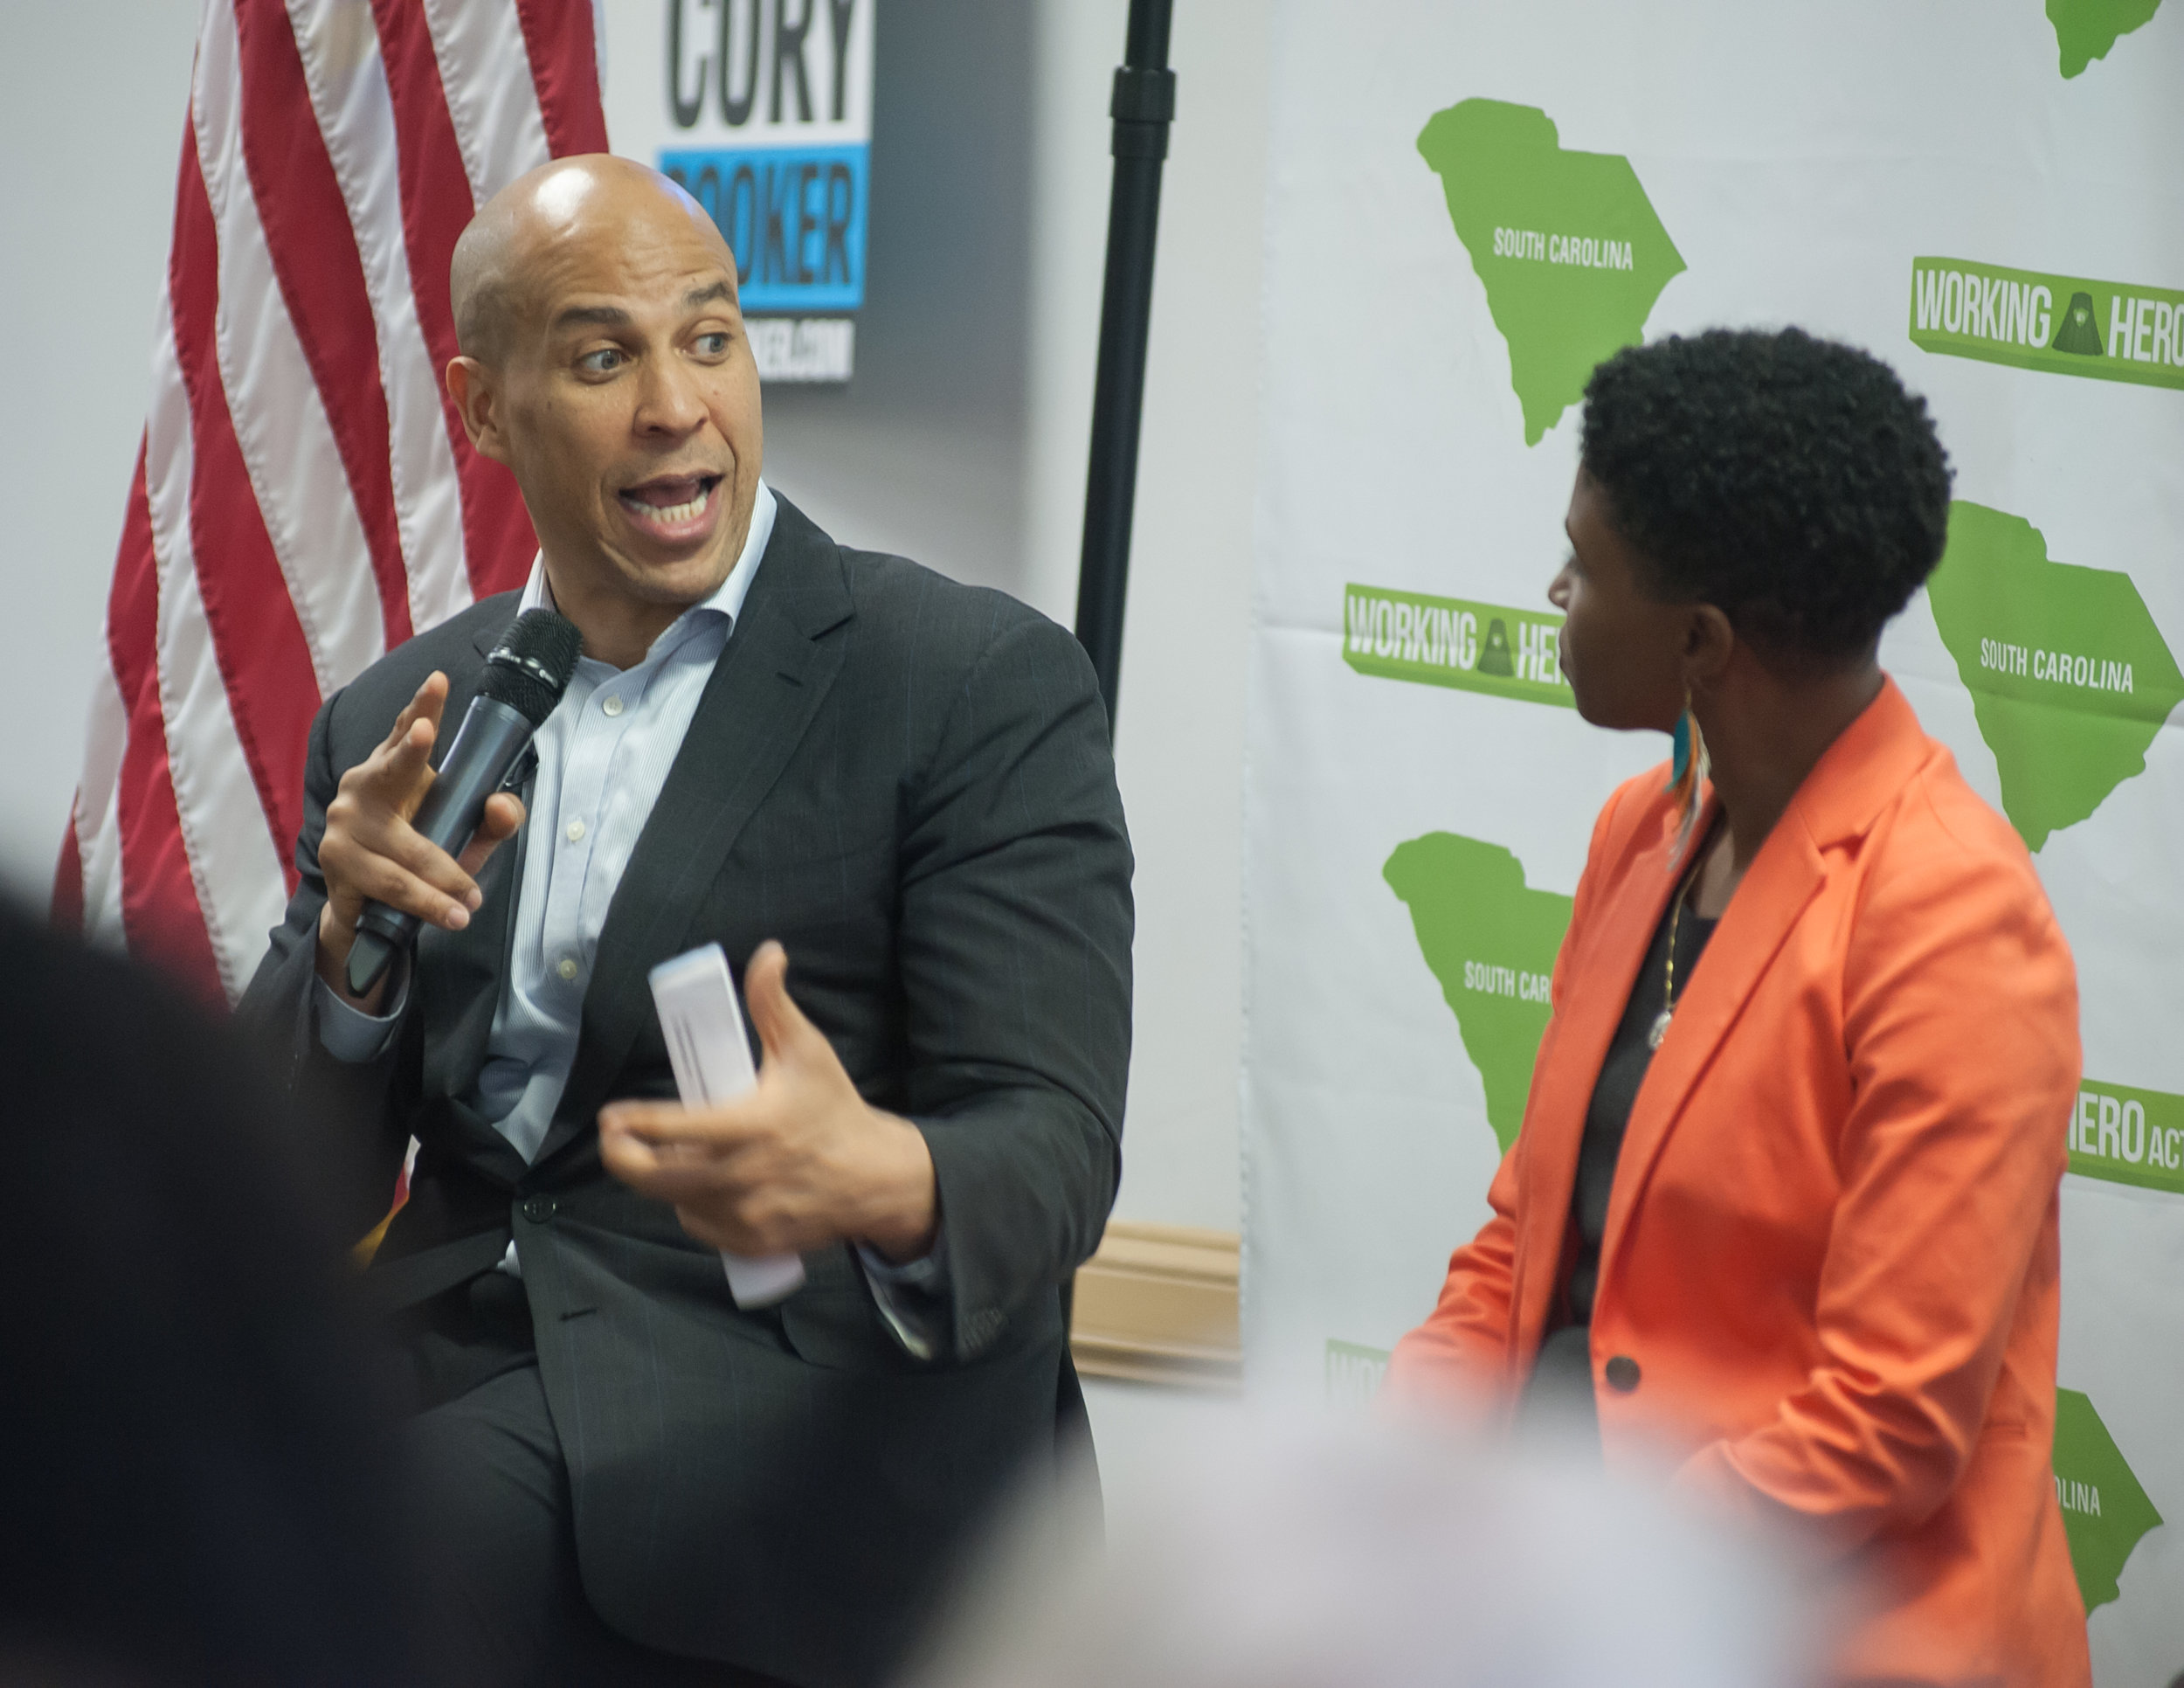 Senator Cory Booker speaks with Working Hero South Carolina director Rania Jamison at a community forum on economic inequality.